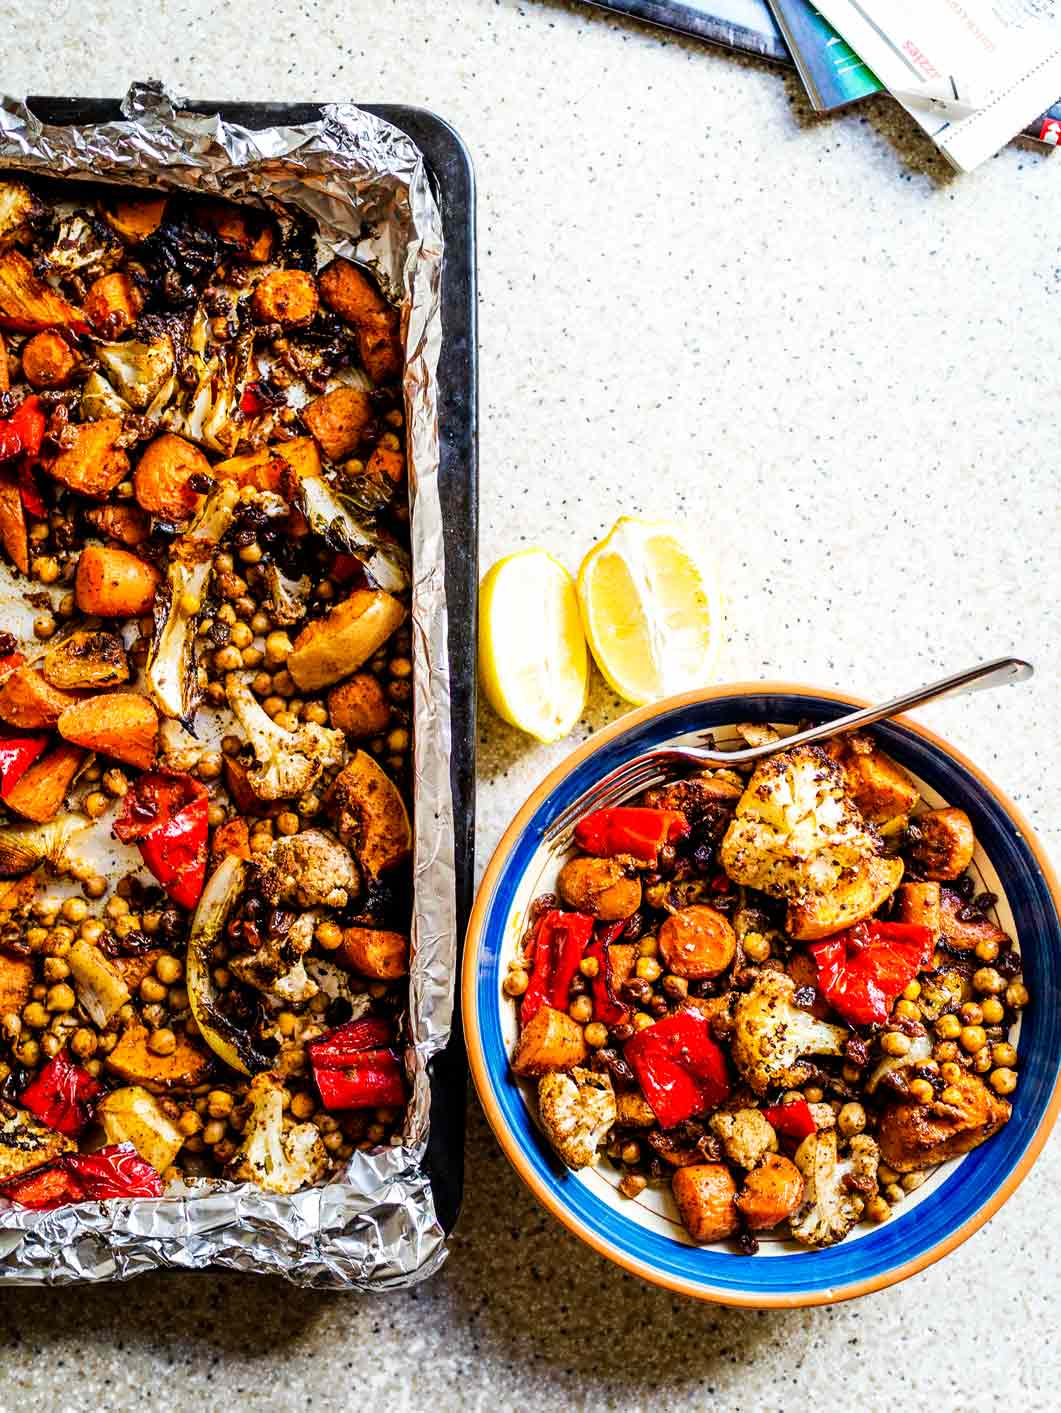 Moroccan Roasted Vegetables w/ Chickpeas + Quick-Pickled Raisins | www.discoverdelicious.org | Vegan Food Blog